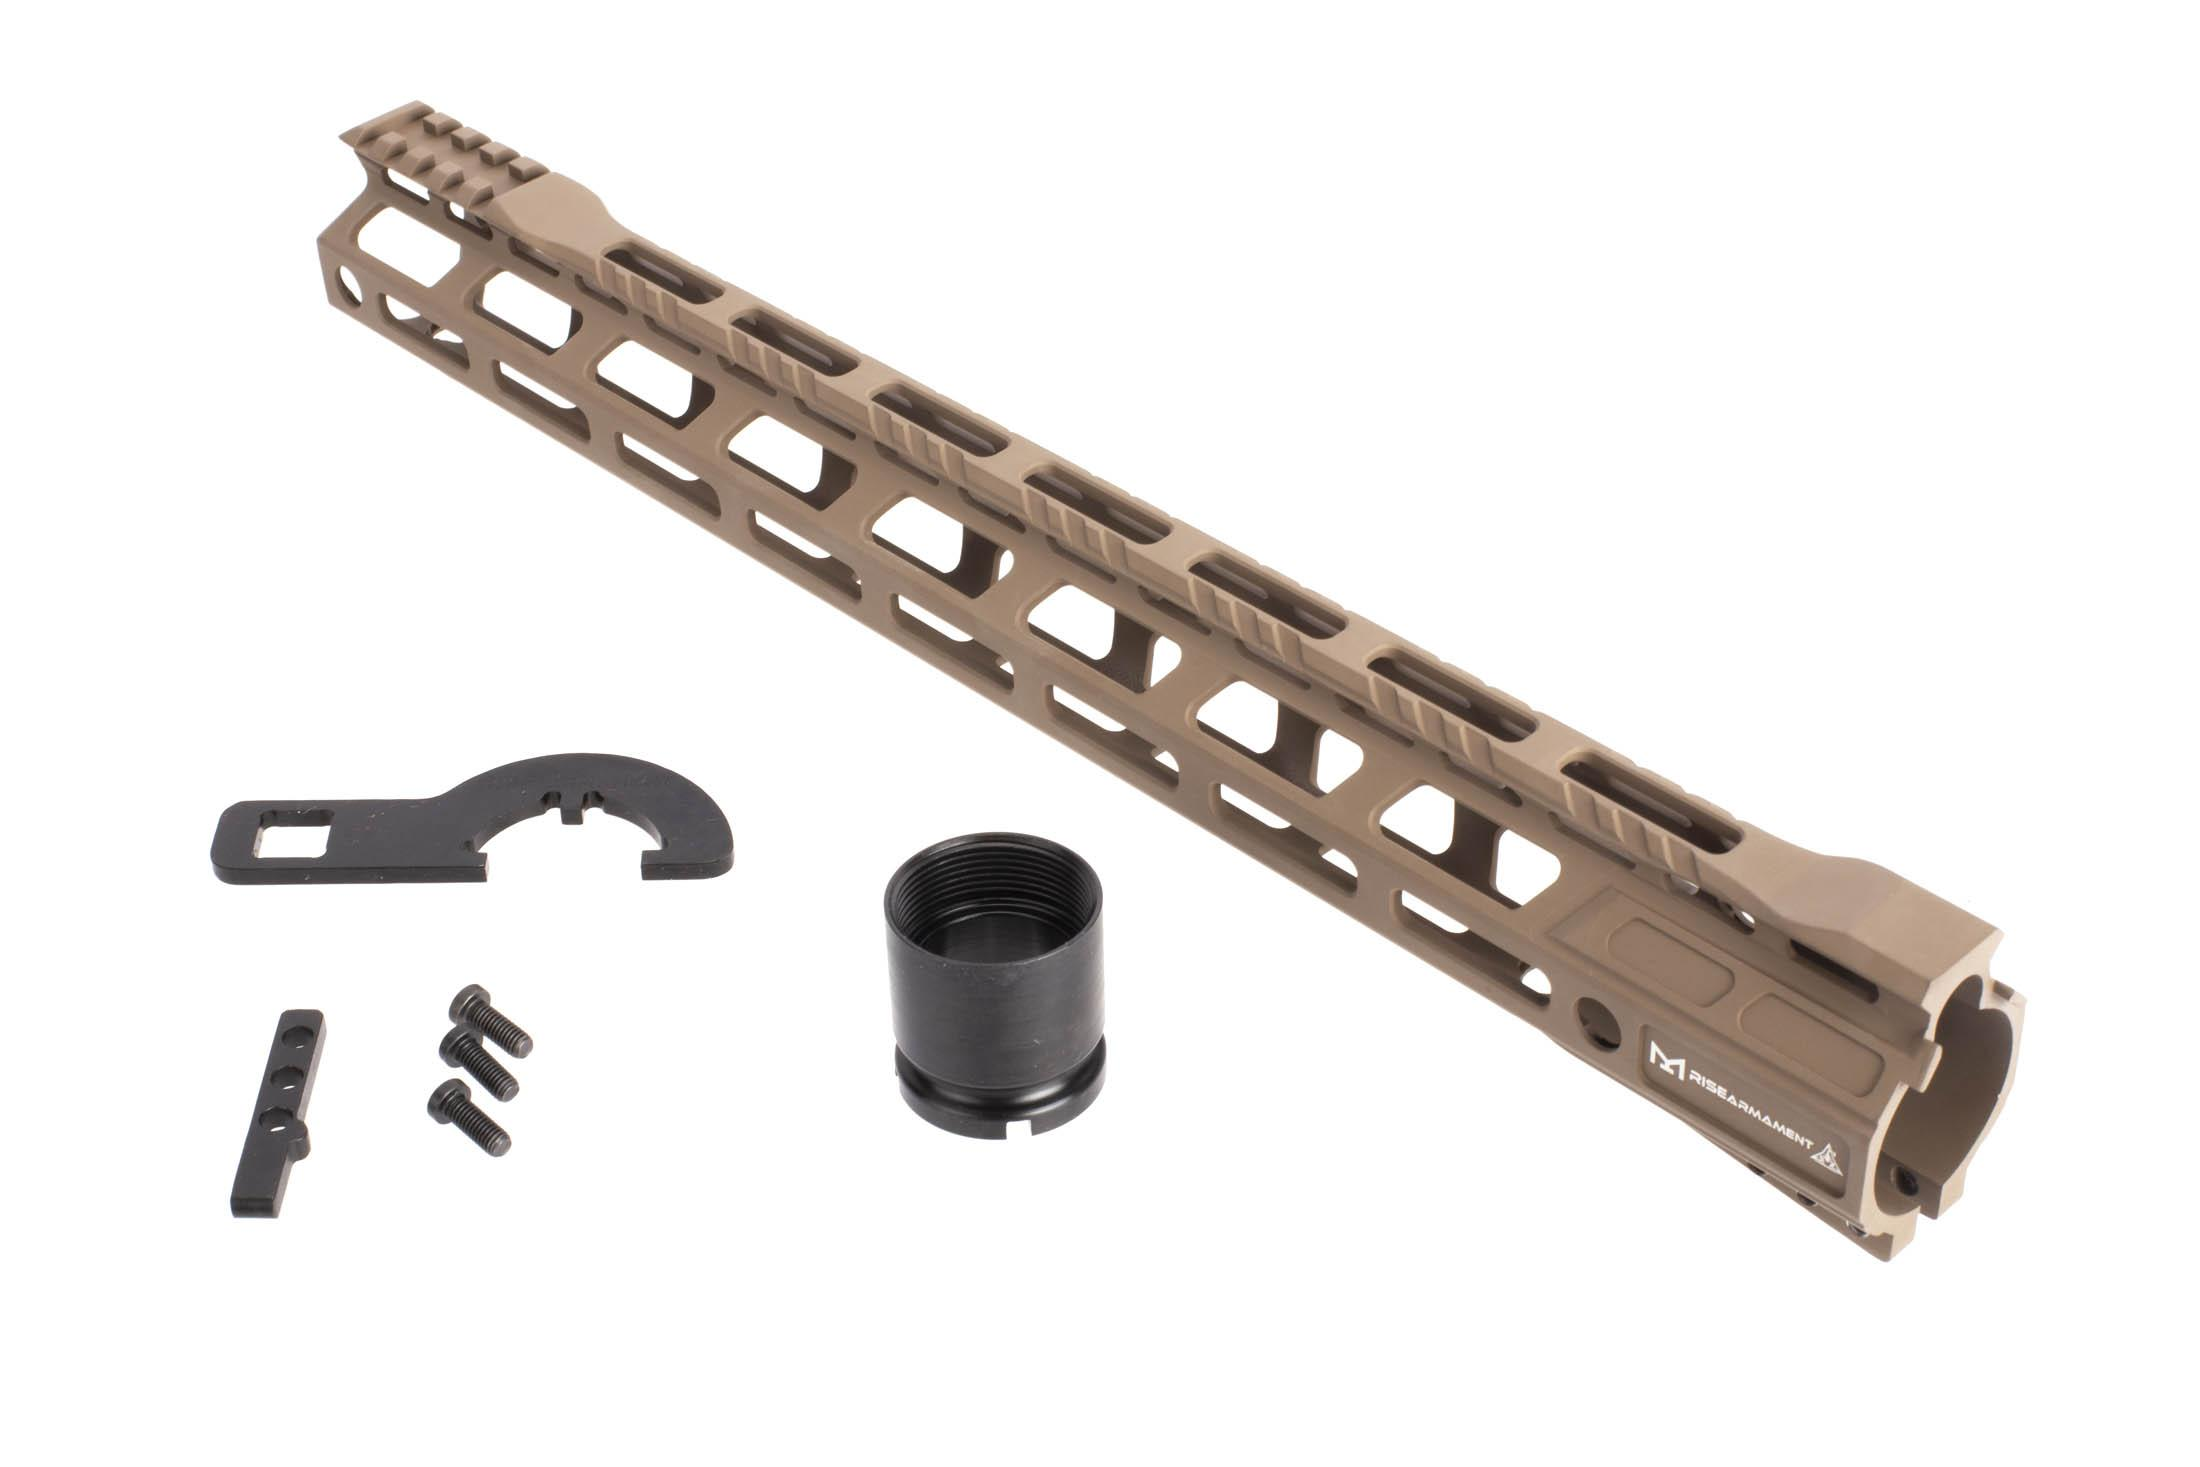 Rise Armament 15in flat dark earth free float lightweight AR 15 handguard includes mounting hardware and barrel nut